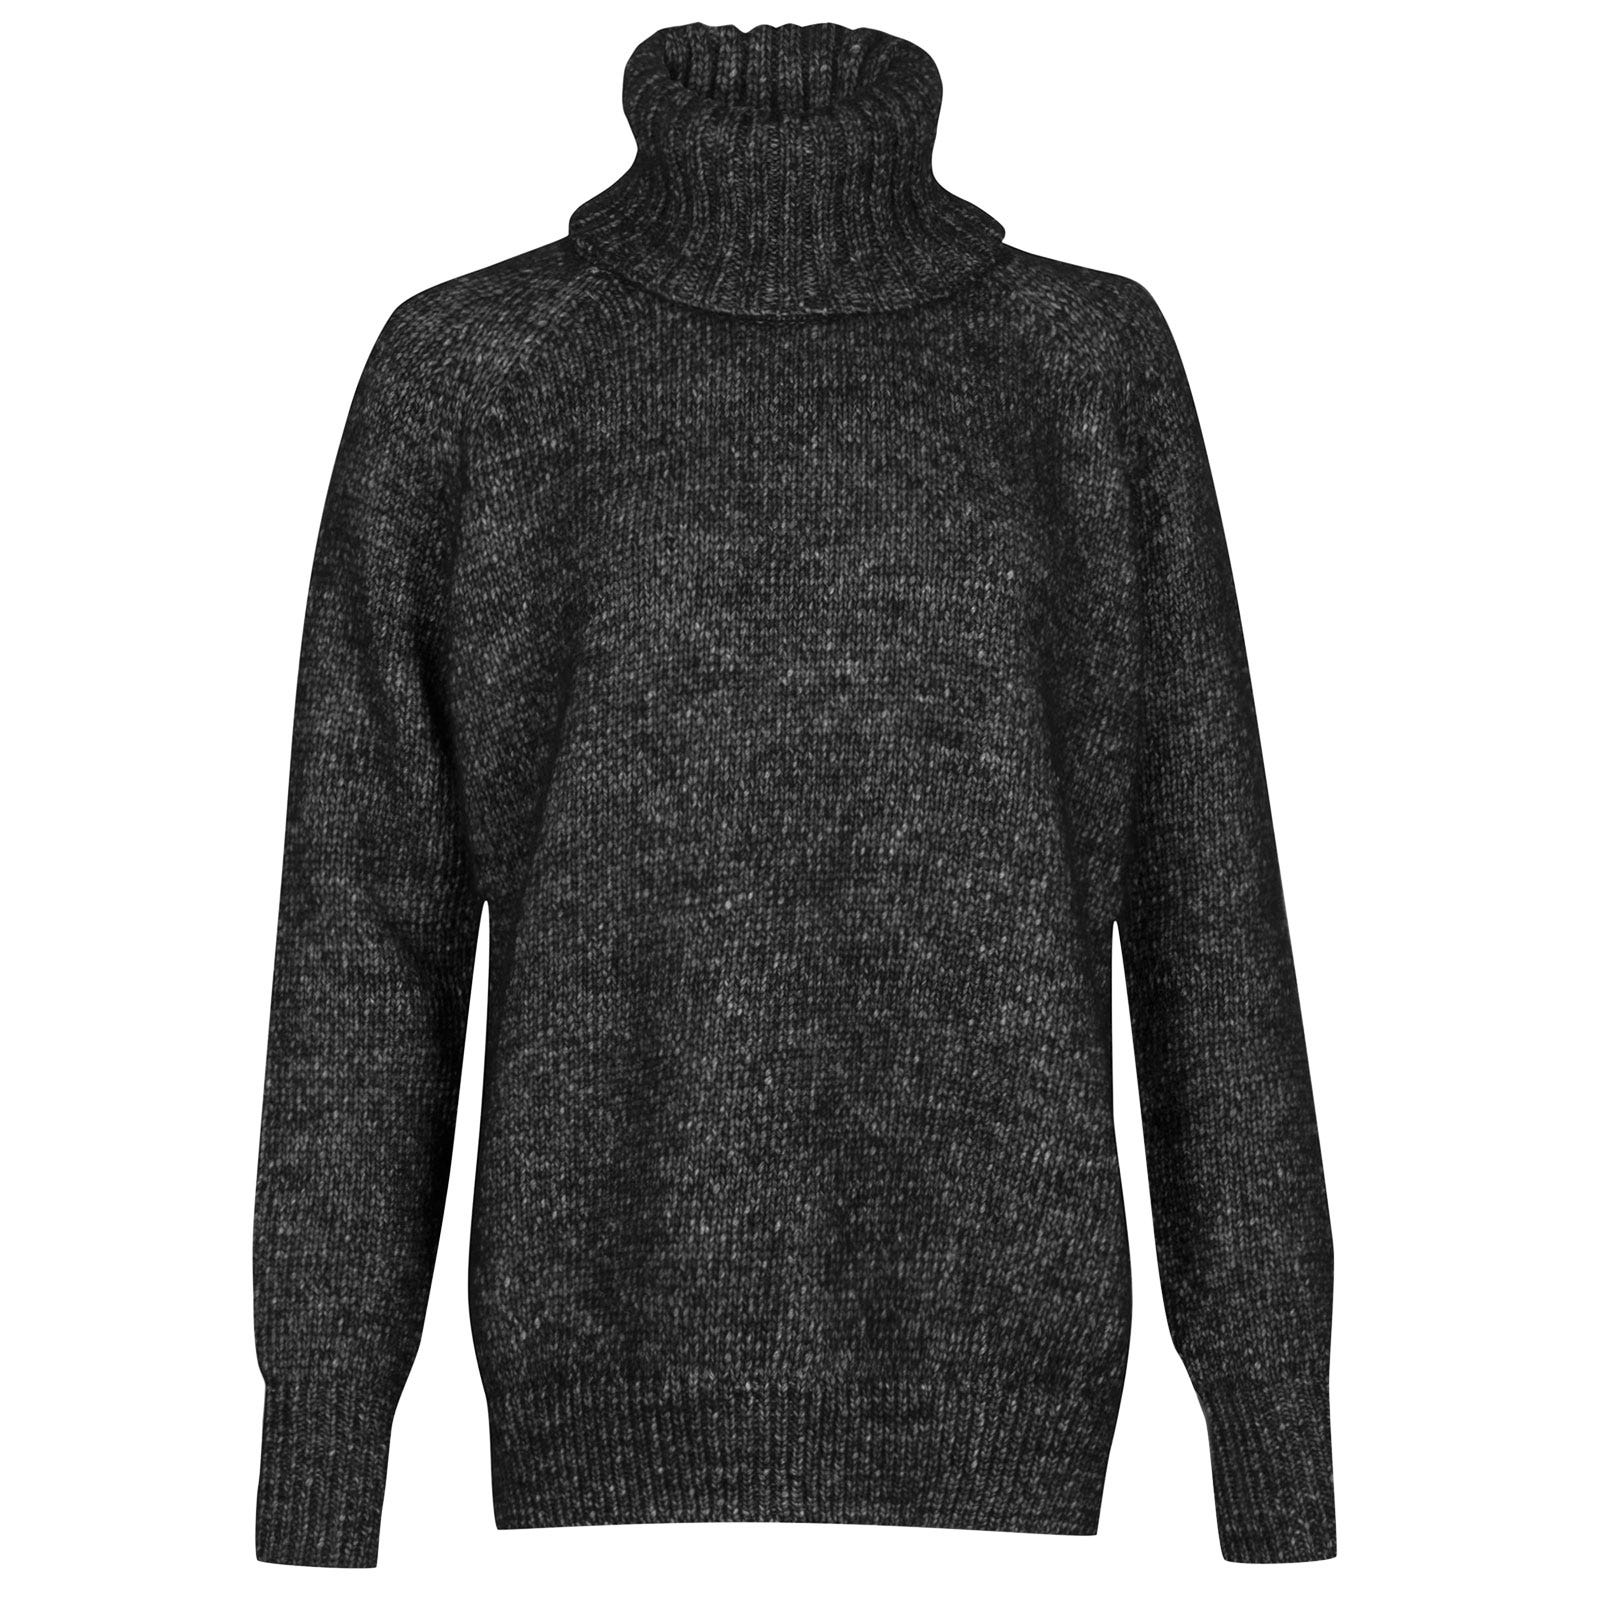 John Smedley Morar Alpaca, Wool & Cotton Sweater in Black-S